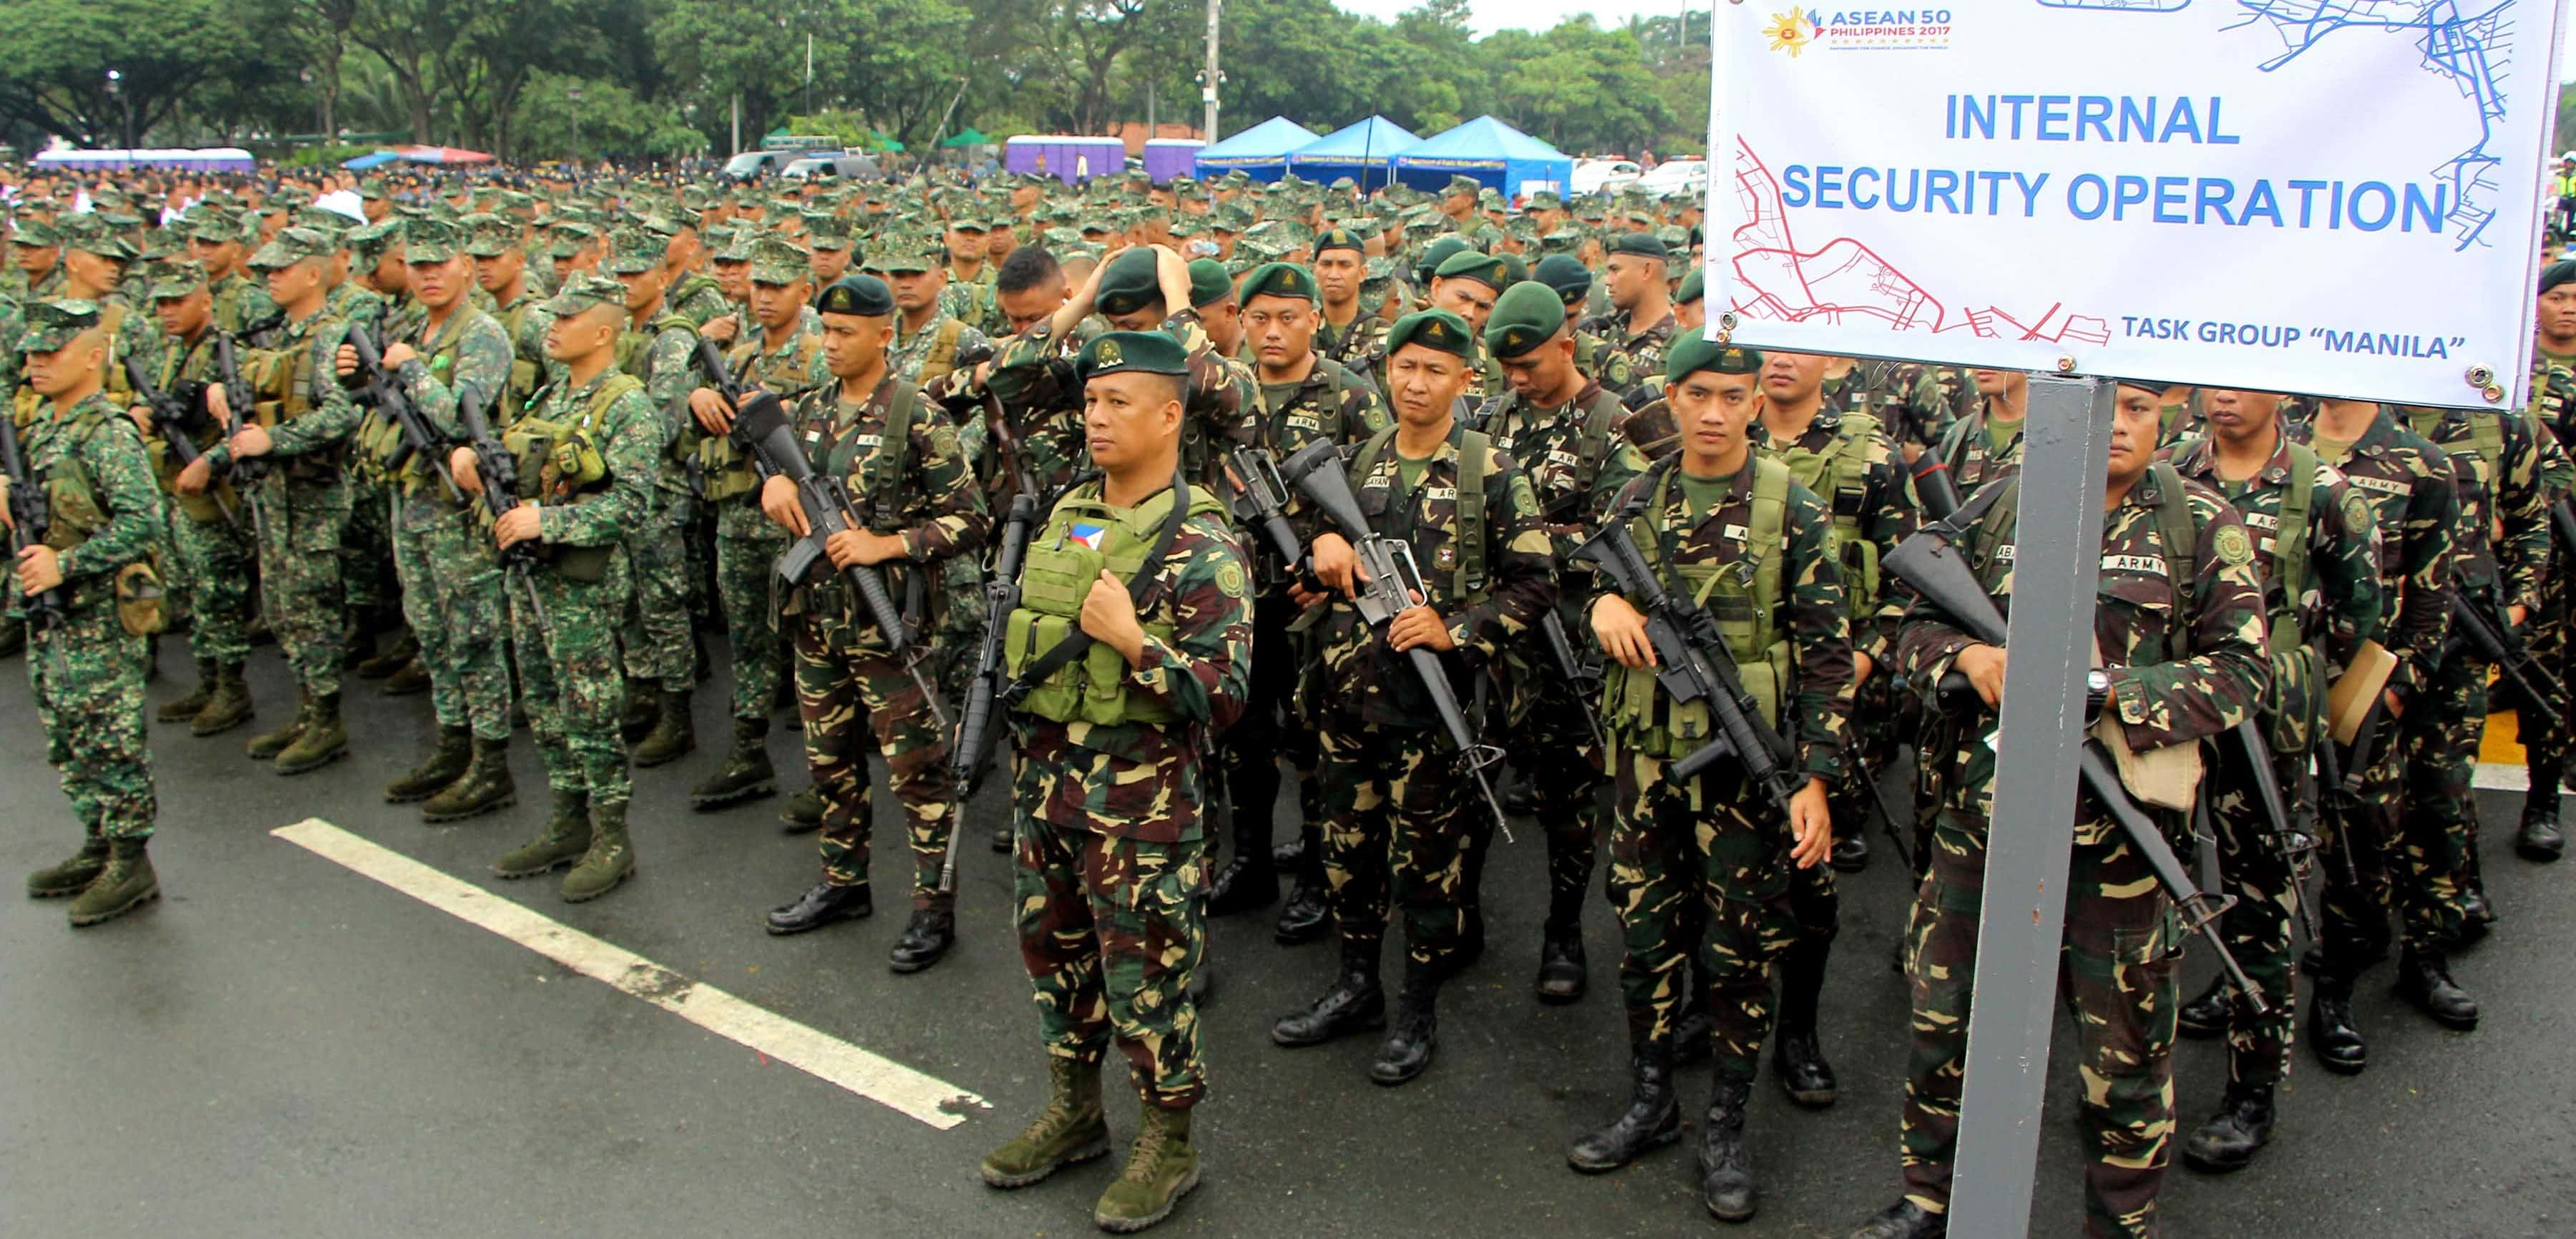 Security forces for the ASEAN Summit, November 2017 (Photo: Gregorio Dantes/Getty Images)